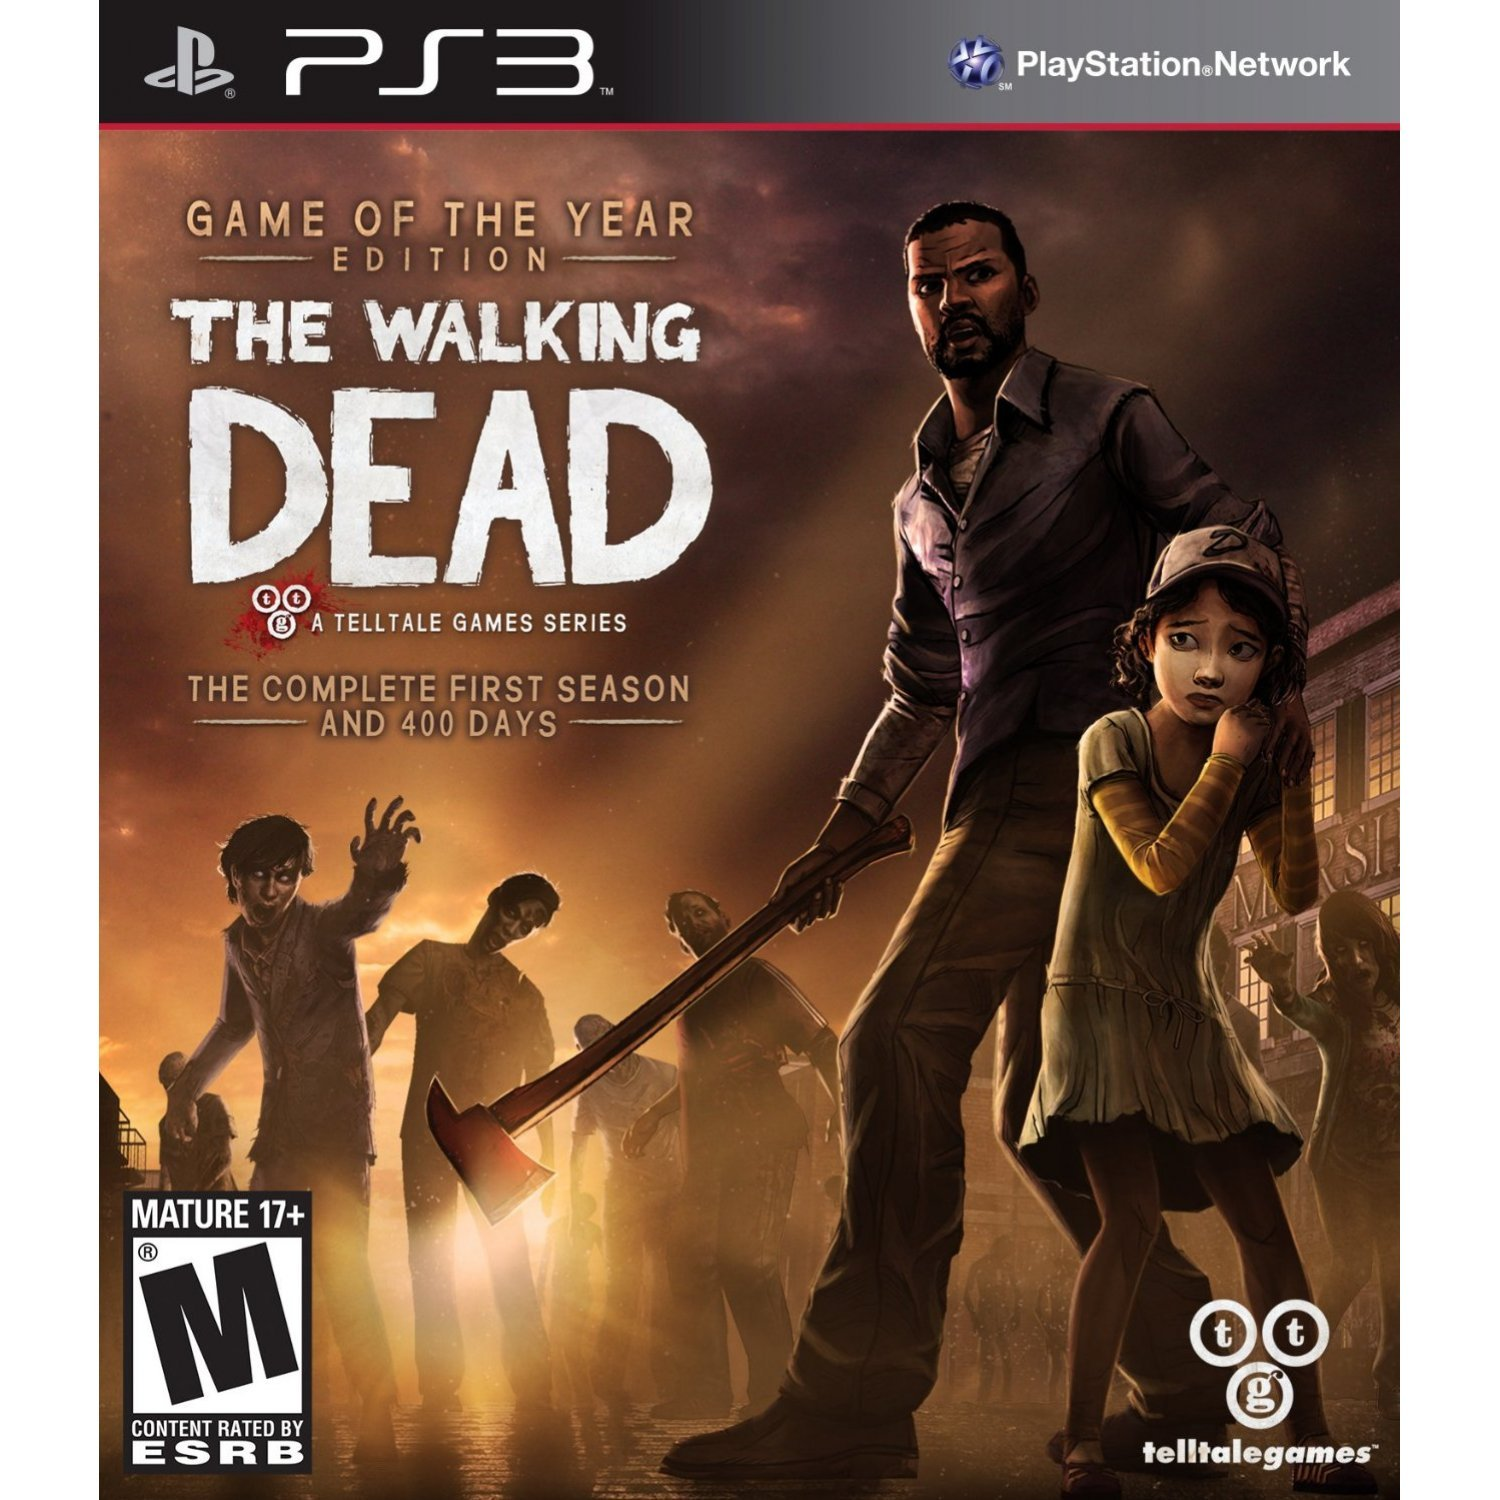 https://s.pacn.ws/1500/j9/the-walking-dead-a-telltale-games-series-game-of-the-year-editio-346875.1.jpg?o2t2v3